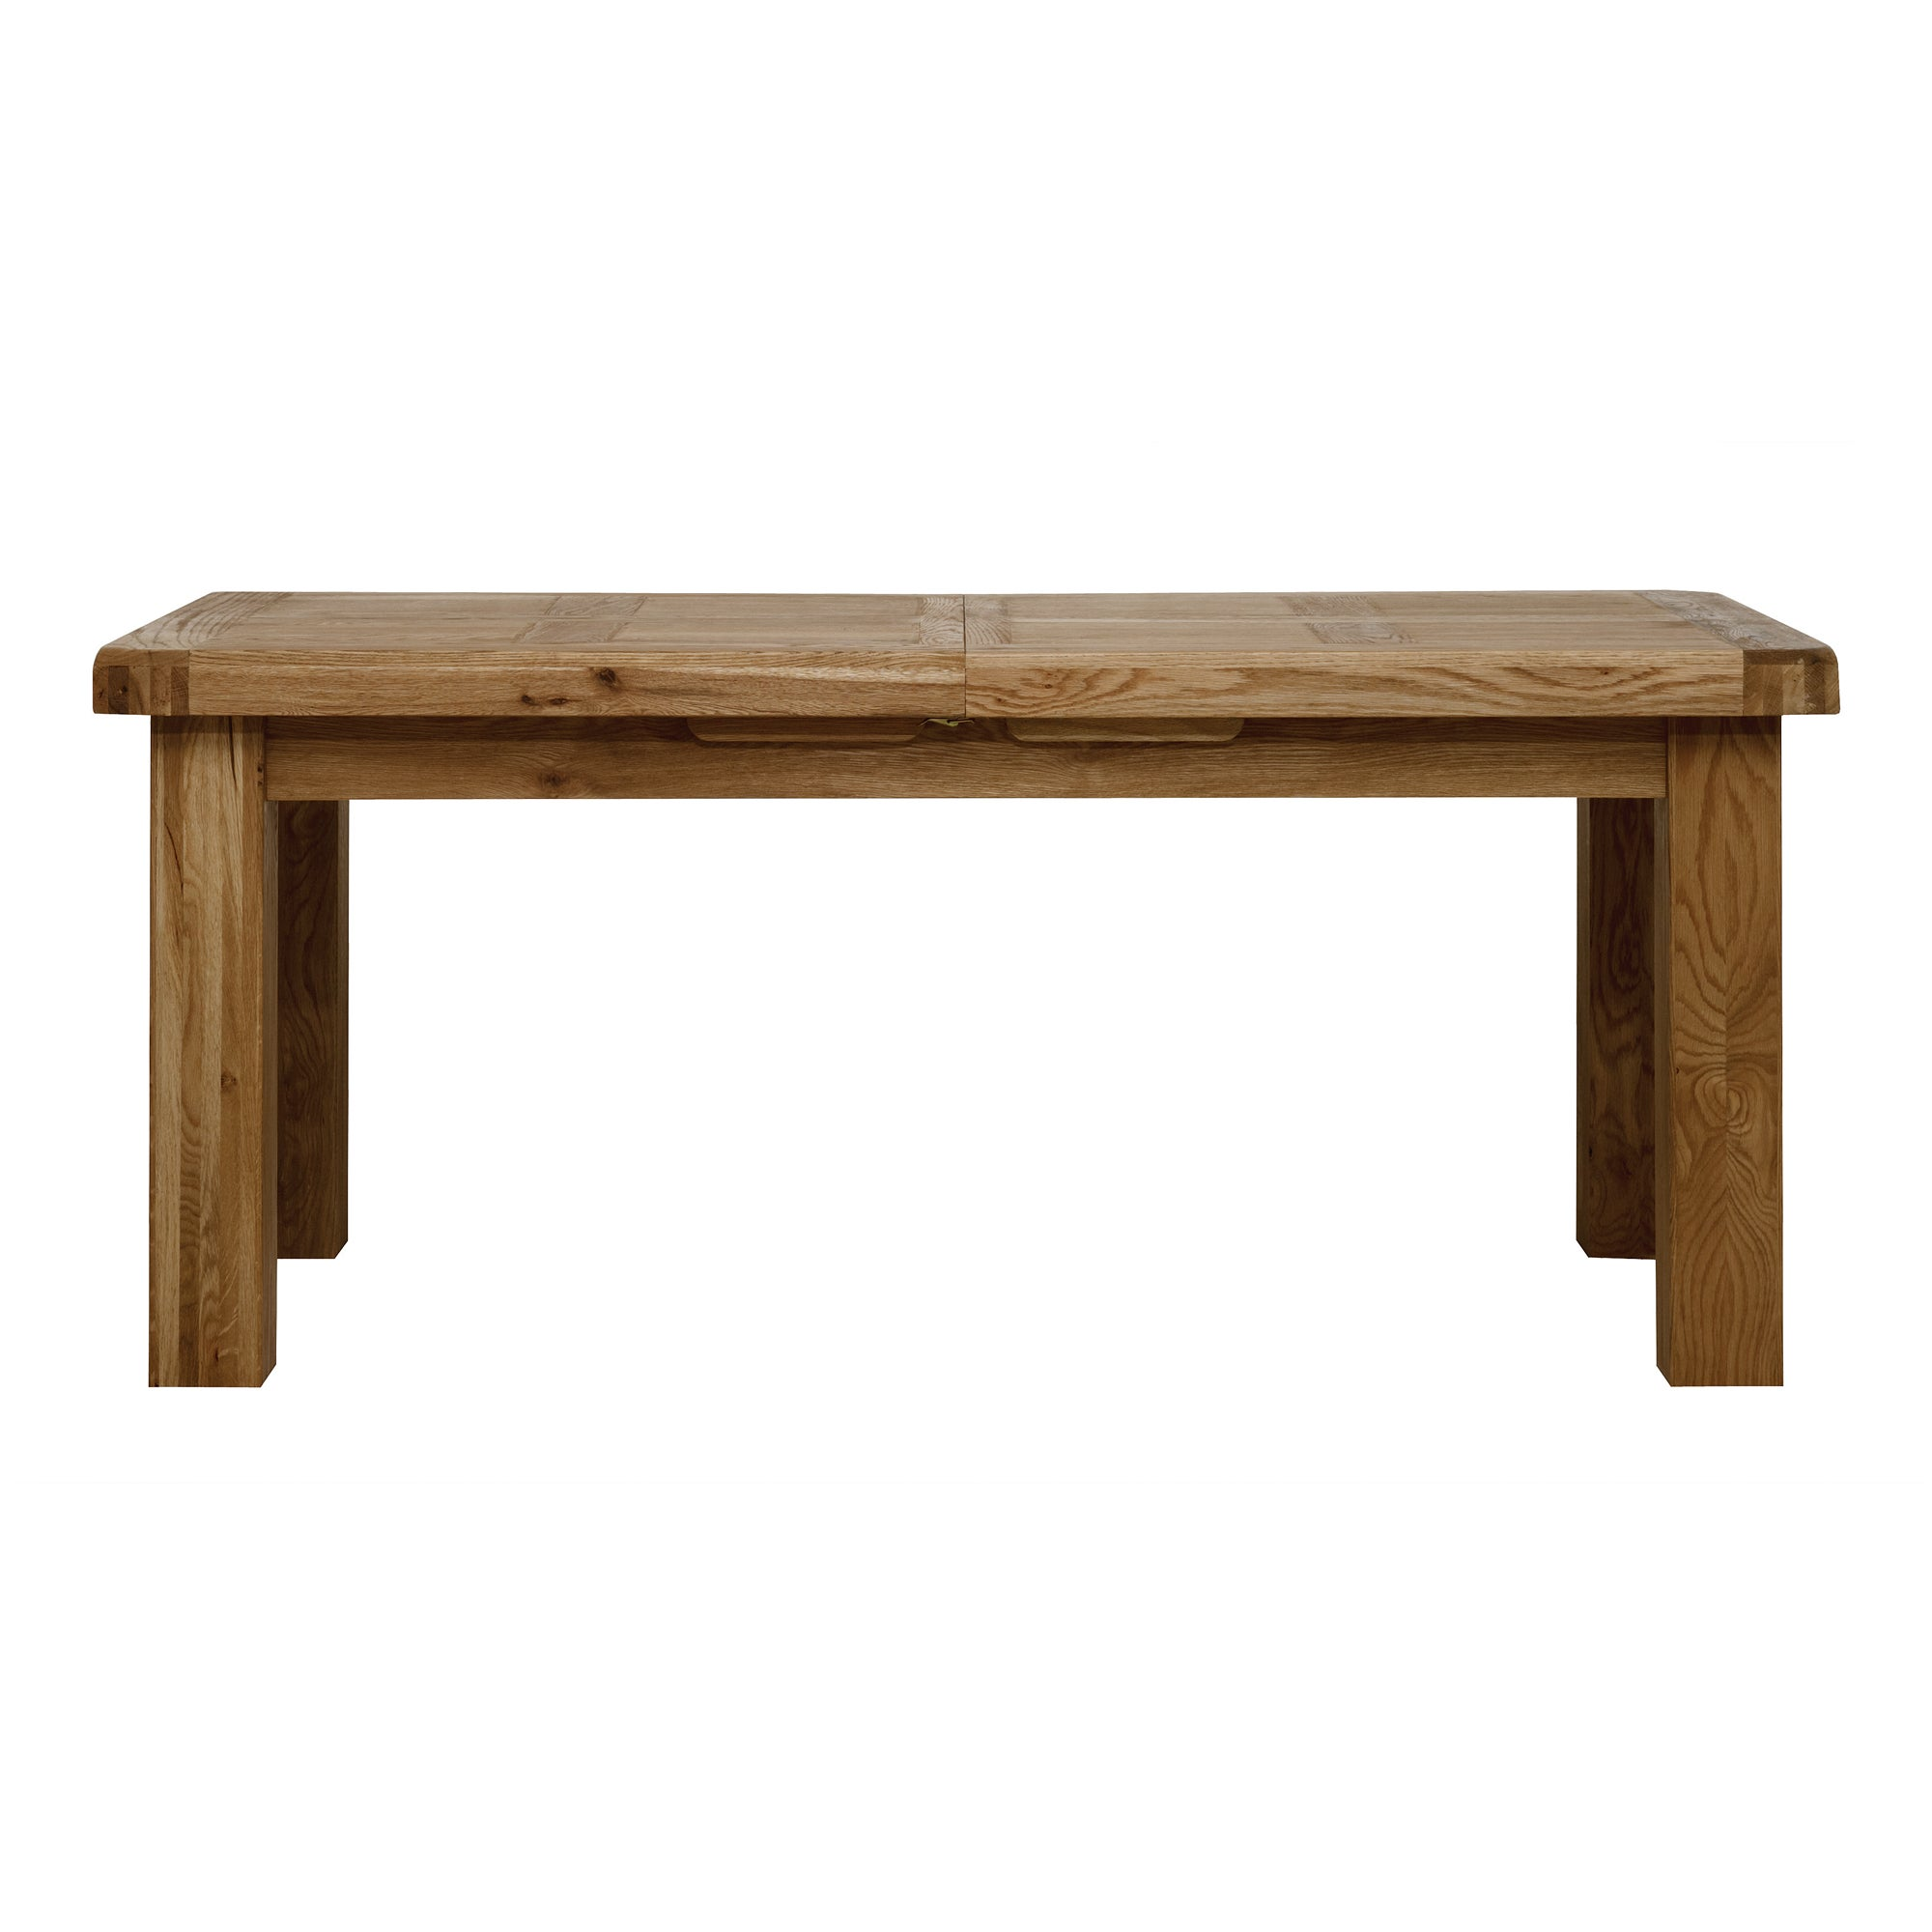 Wexford Oak Extending Dining Table